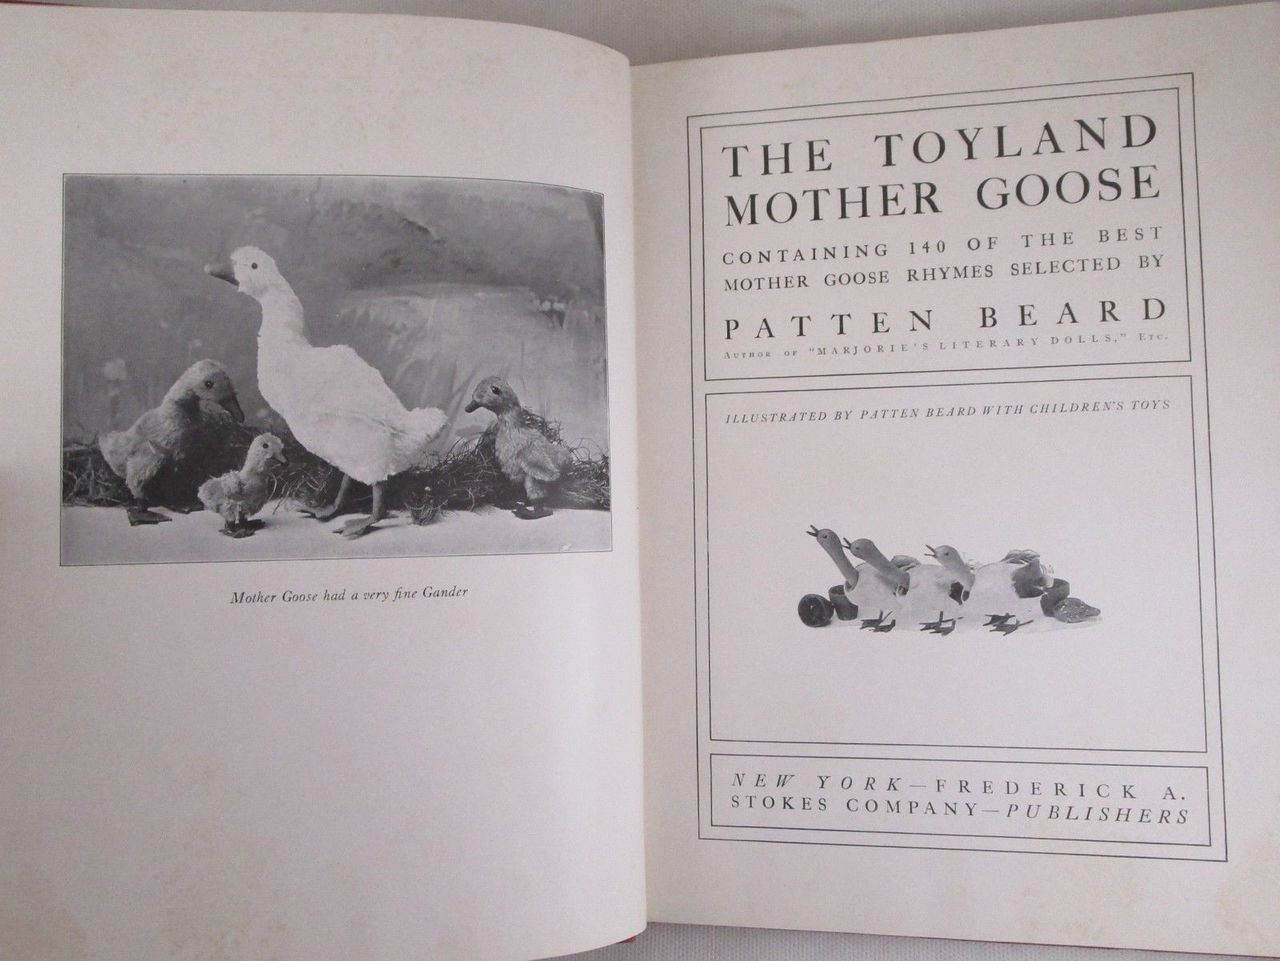 THE TOYLAND: MOTHER GOOSE, by Patten Beard - 1917 [1st Ed]